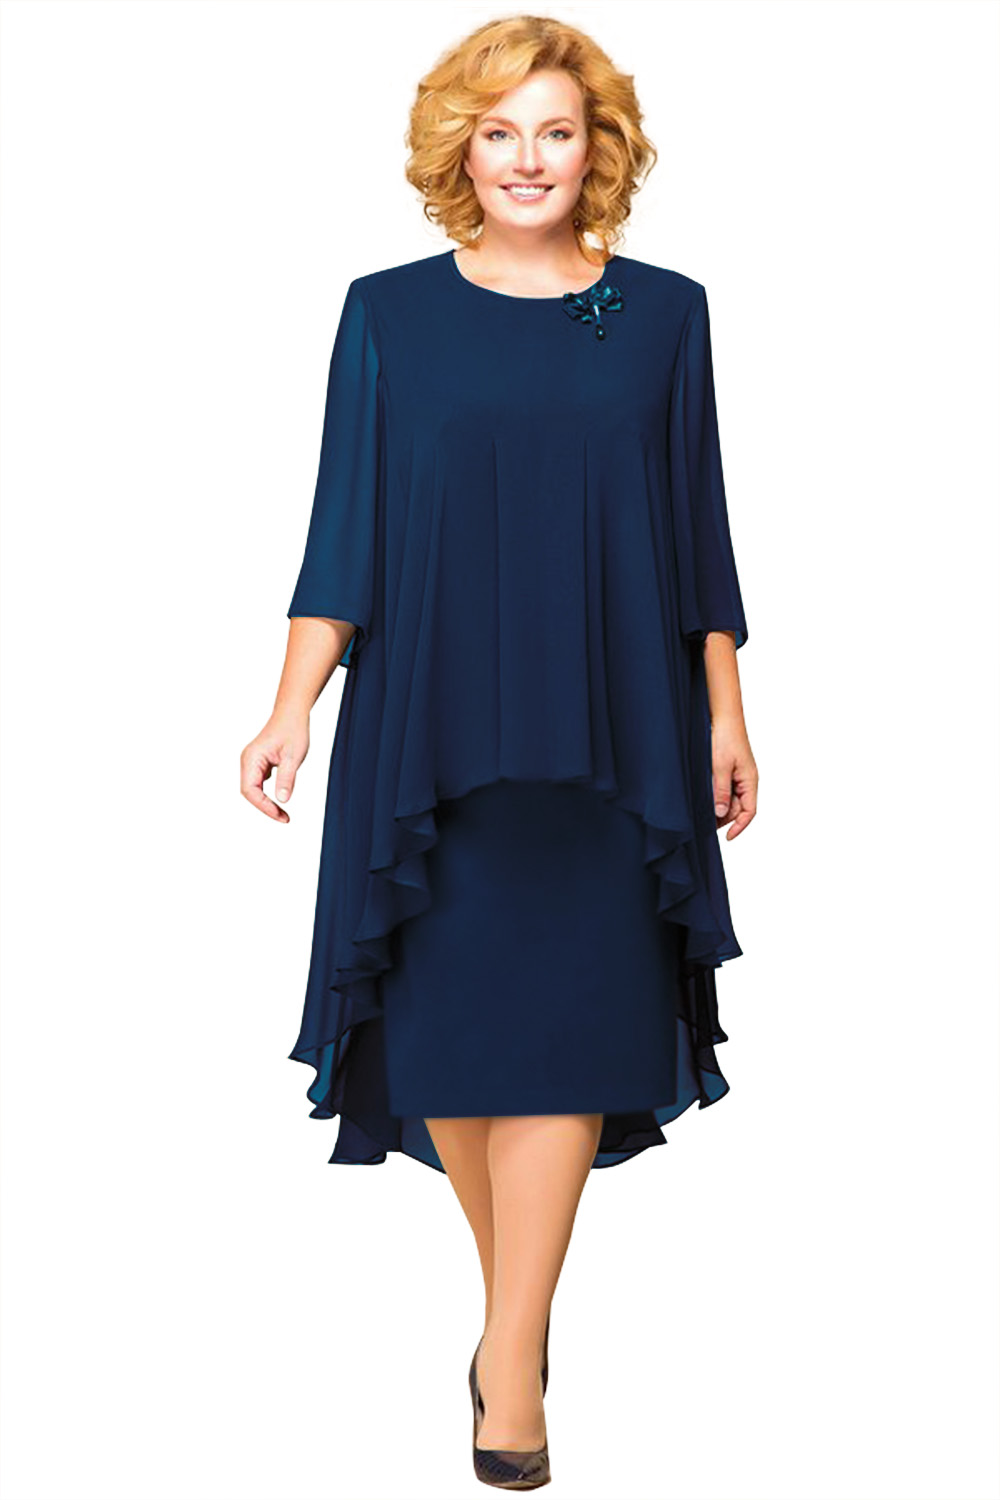 MEGA DEAL) Plus Size Mother Of The Bride Dresses With Jacket ...